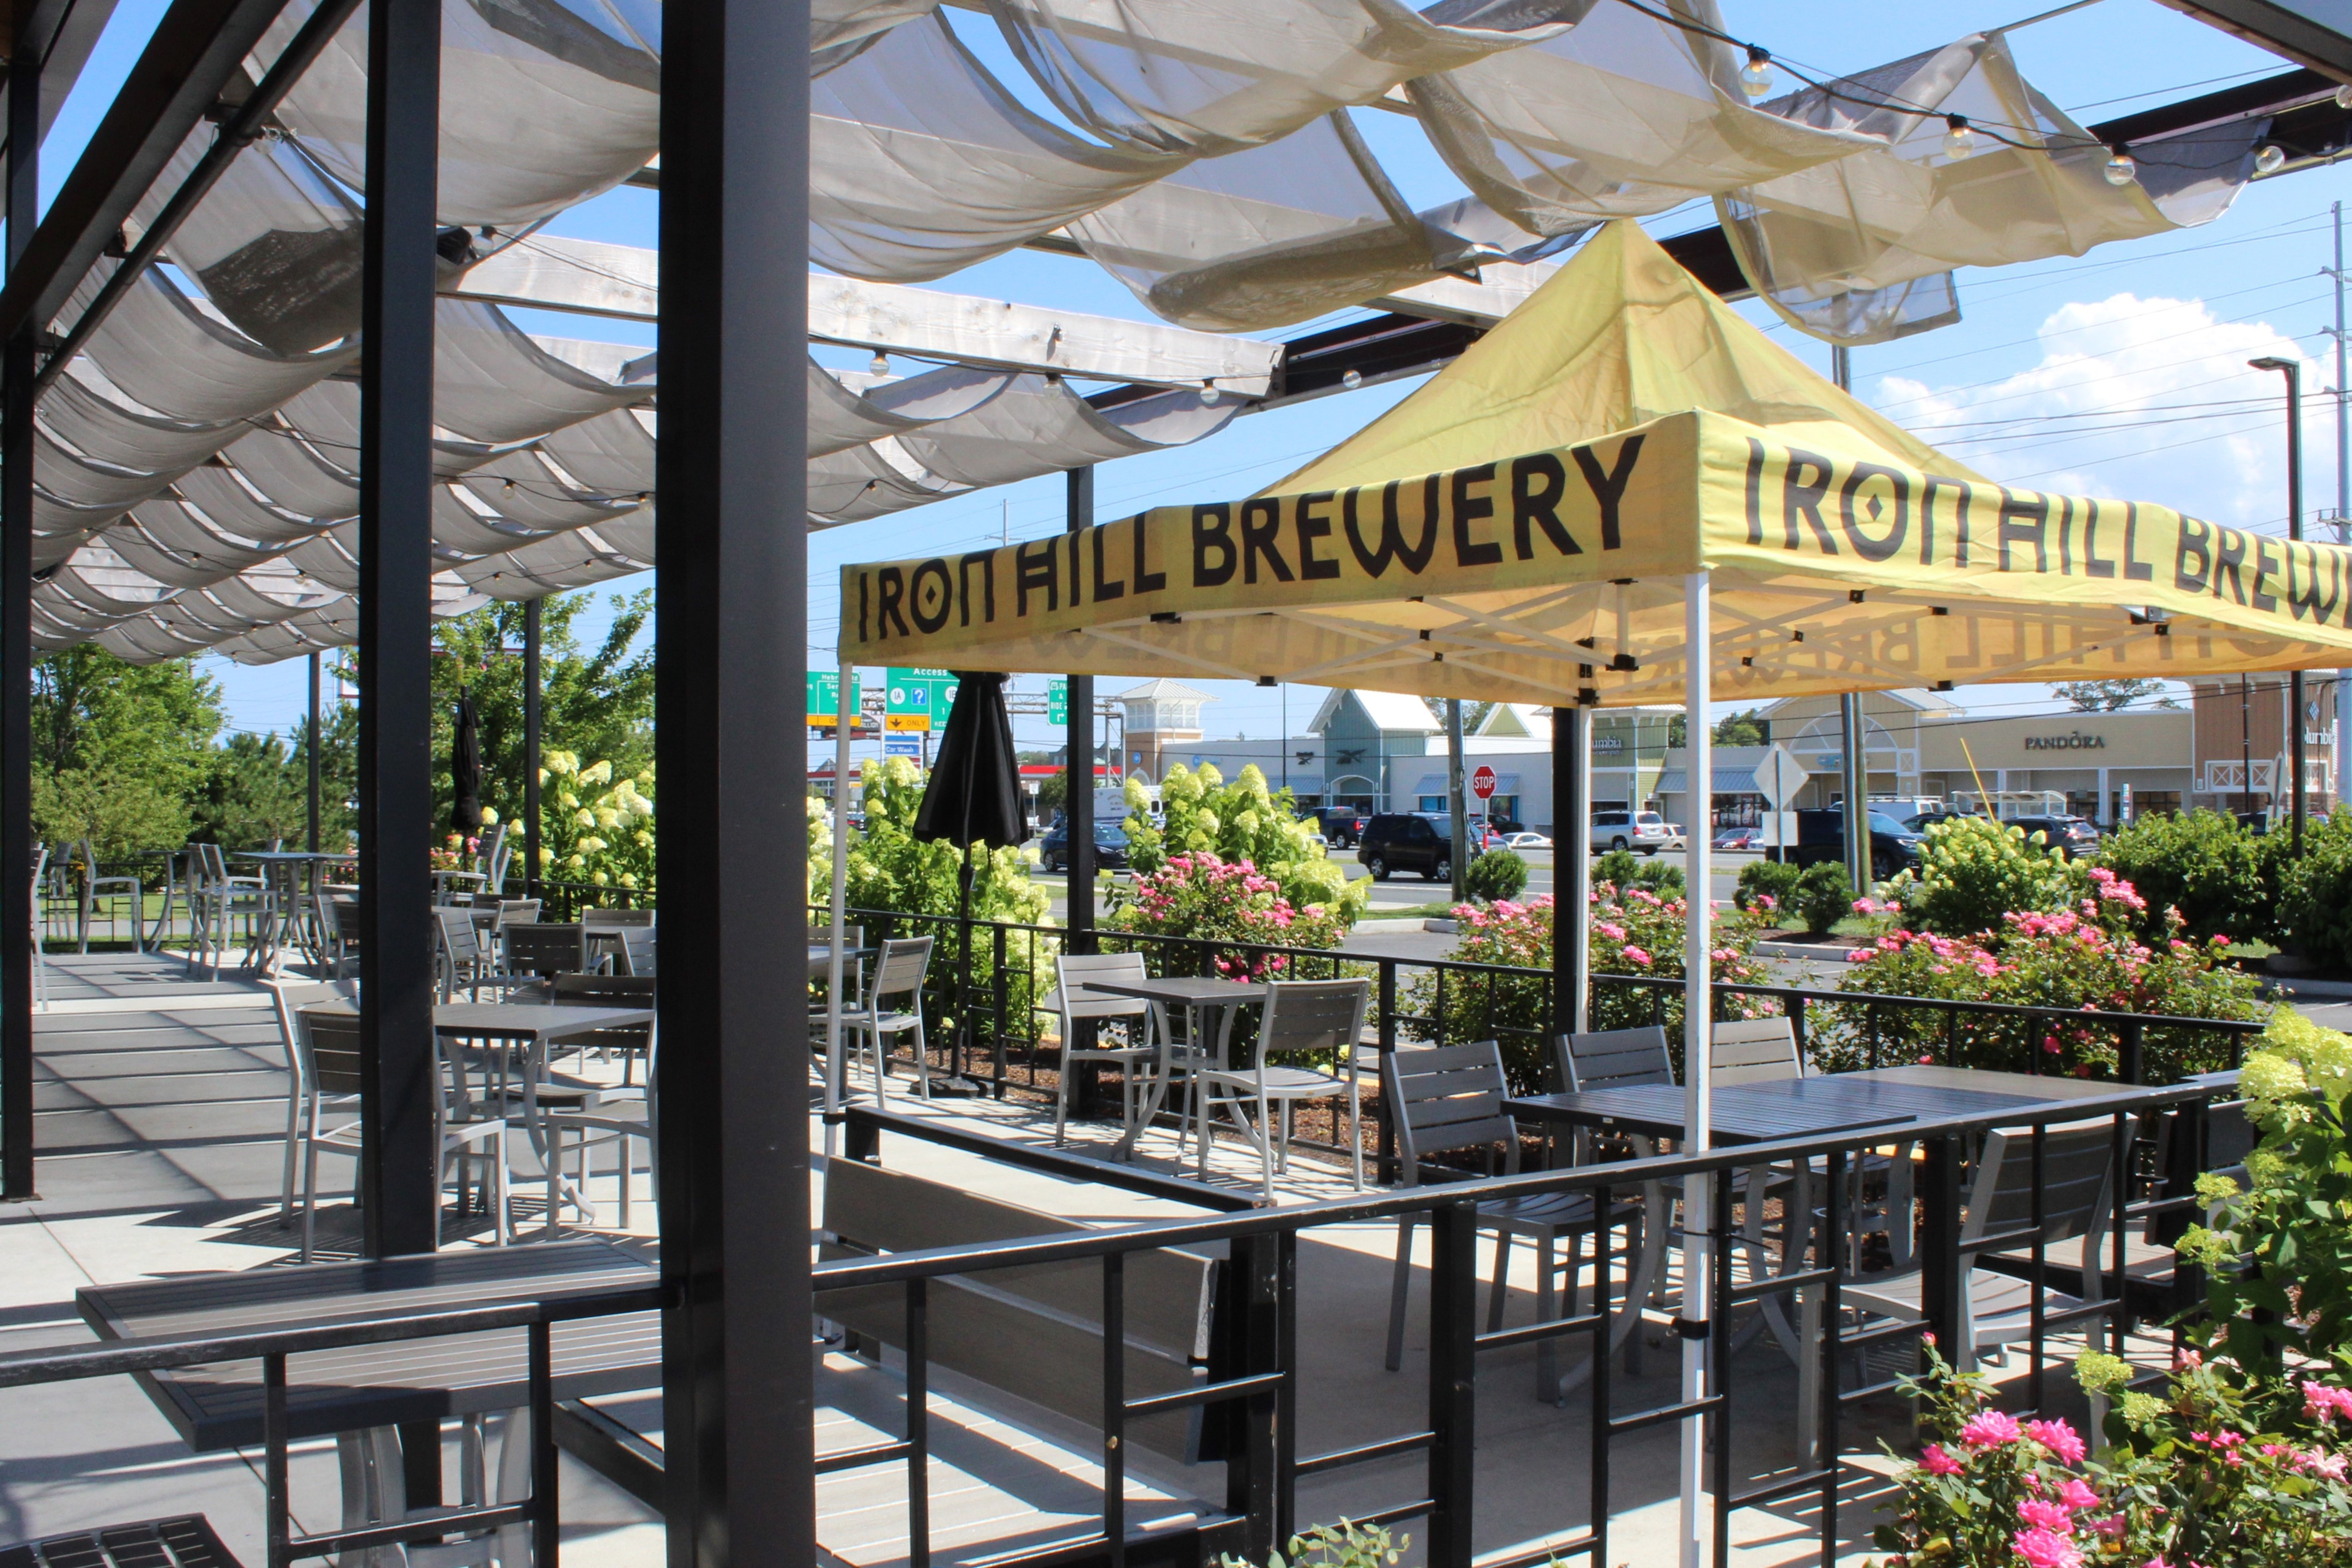 Iron Hill Brewery, Rehoboth Beach